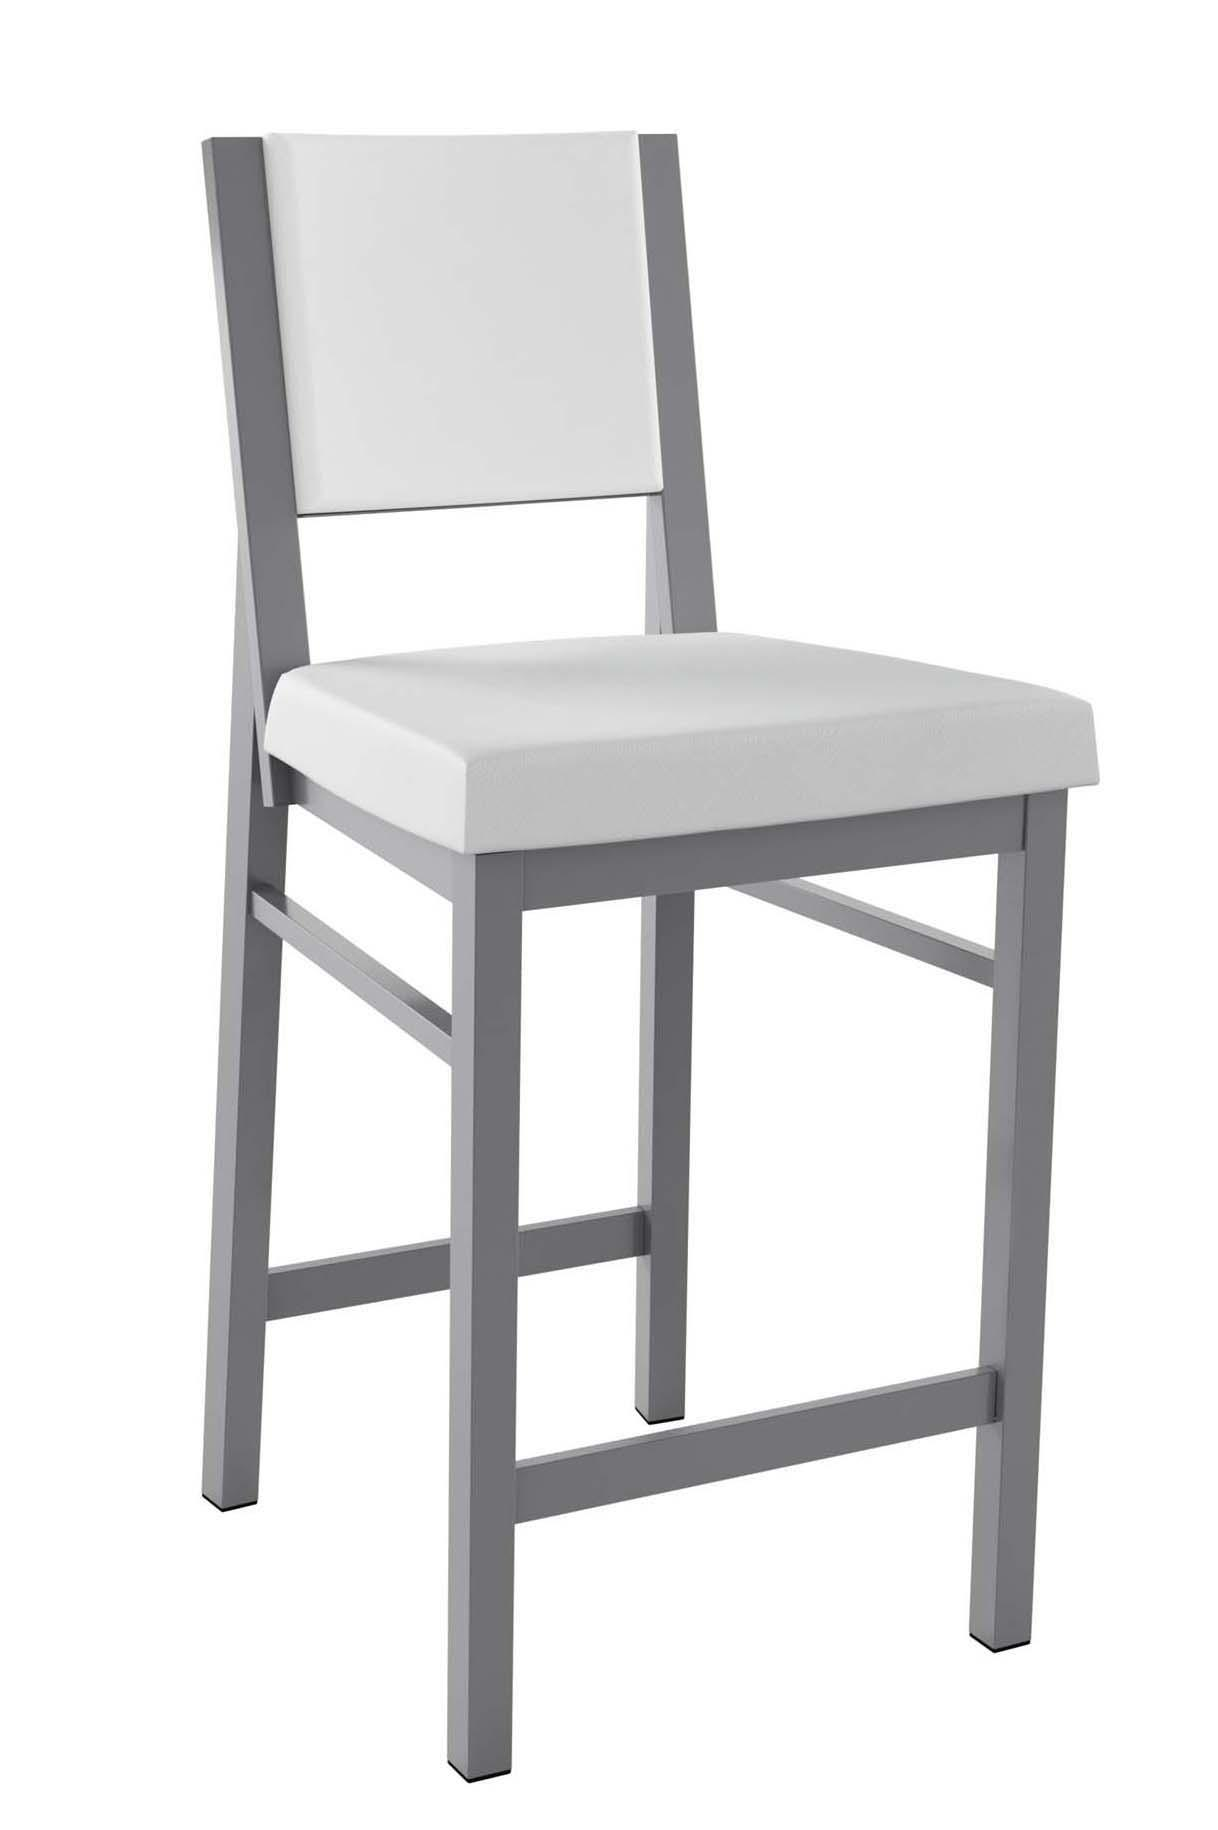 Urban Peyton Bar Stool by Amisco at Rooms and Rest